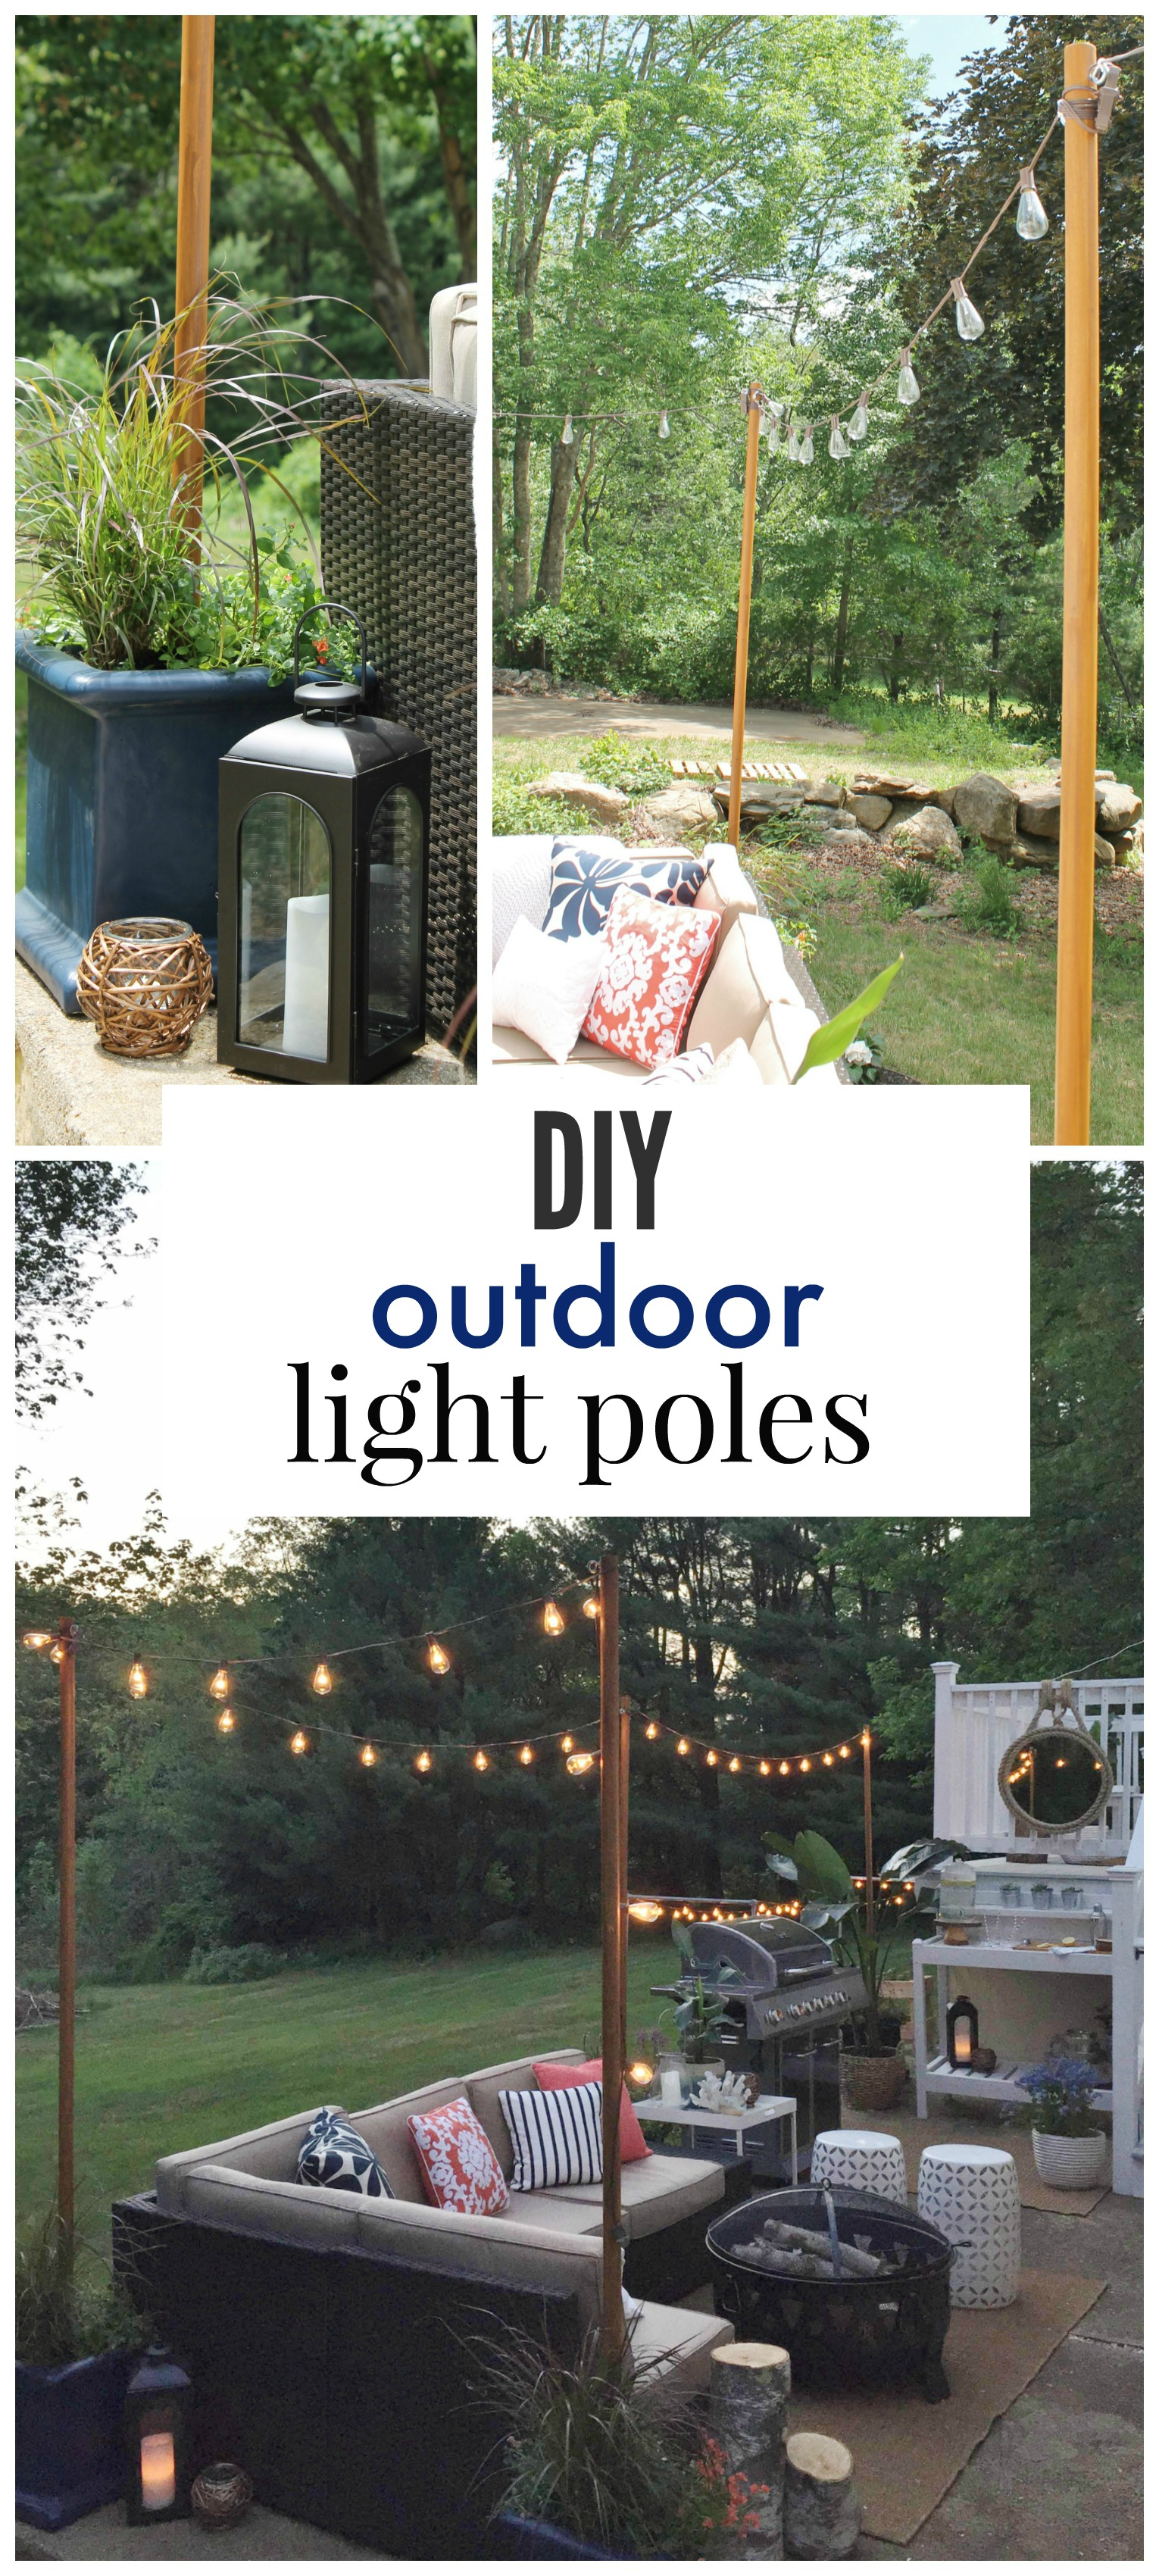 DIY Outdoor Light Poles - City Farmhouse on